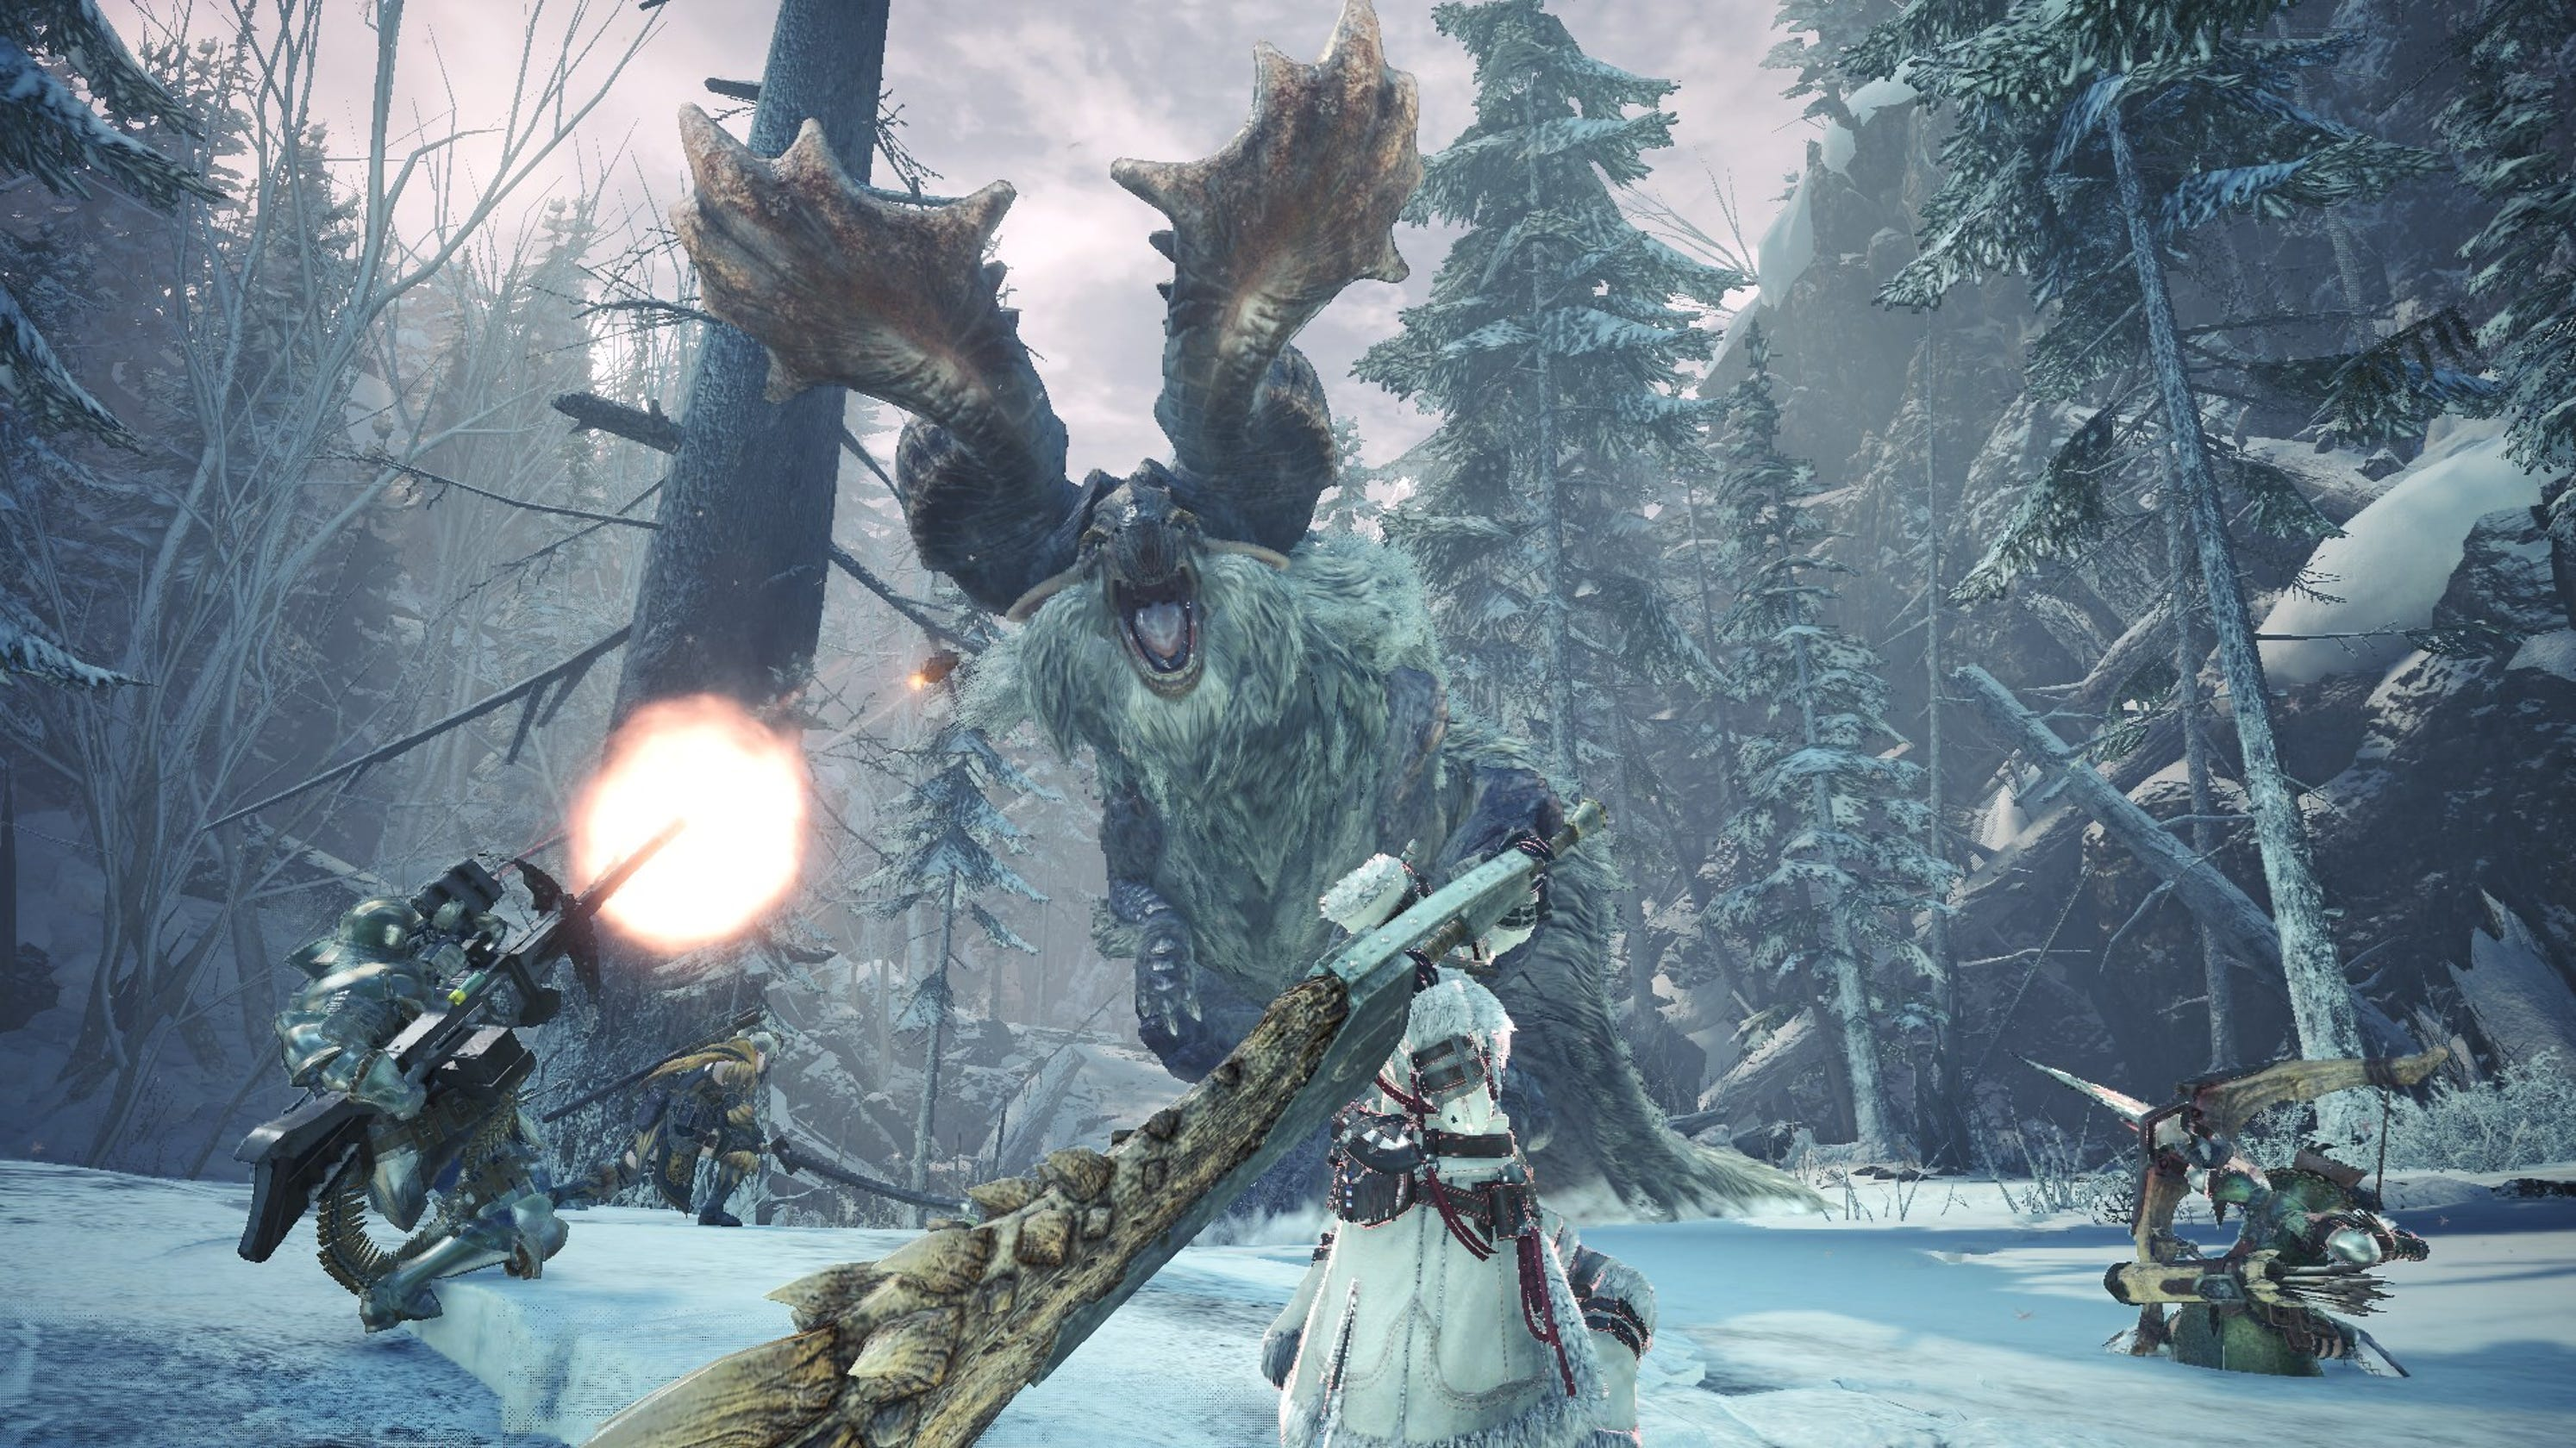 Monster Hunter World Iceborne adds new slinger combos